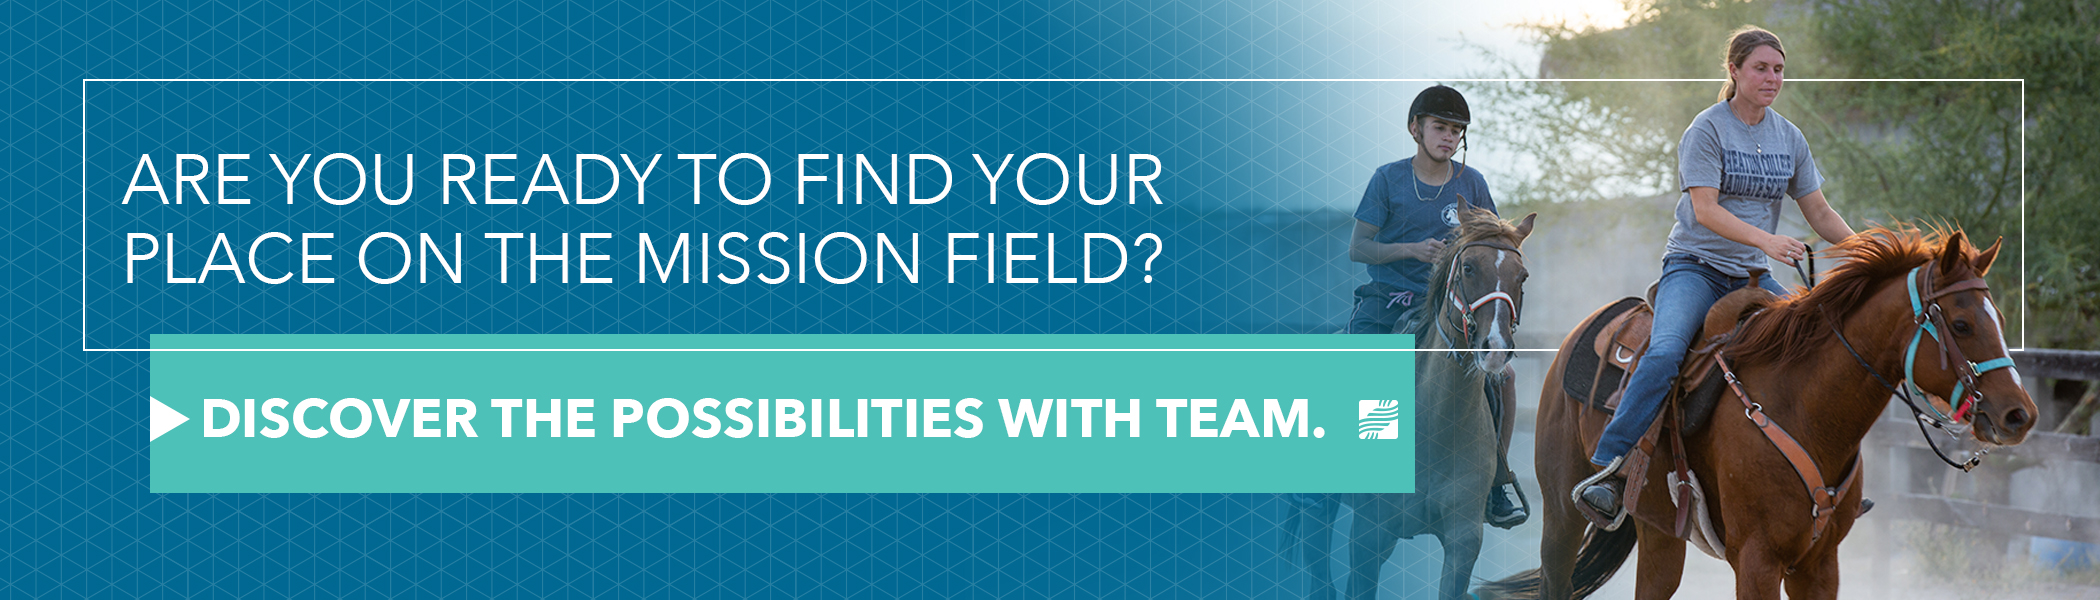 Find your place on the mission field. Click here to explore service with TEAM!